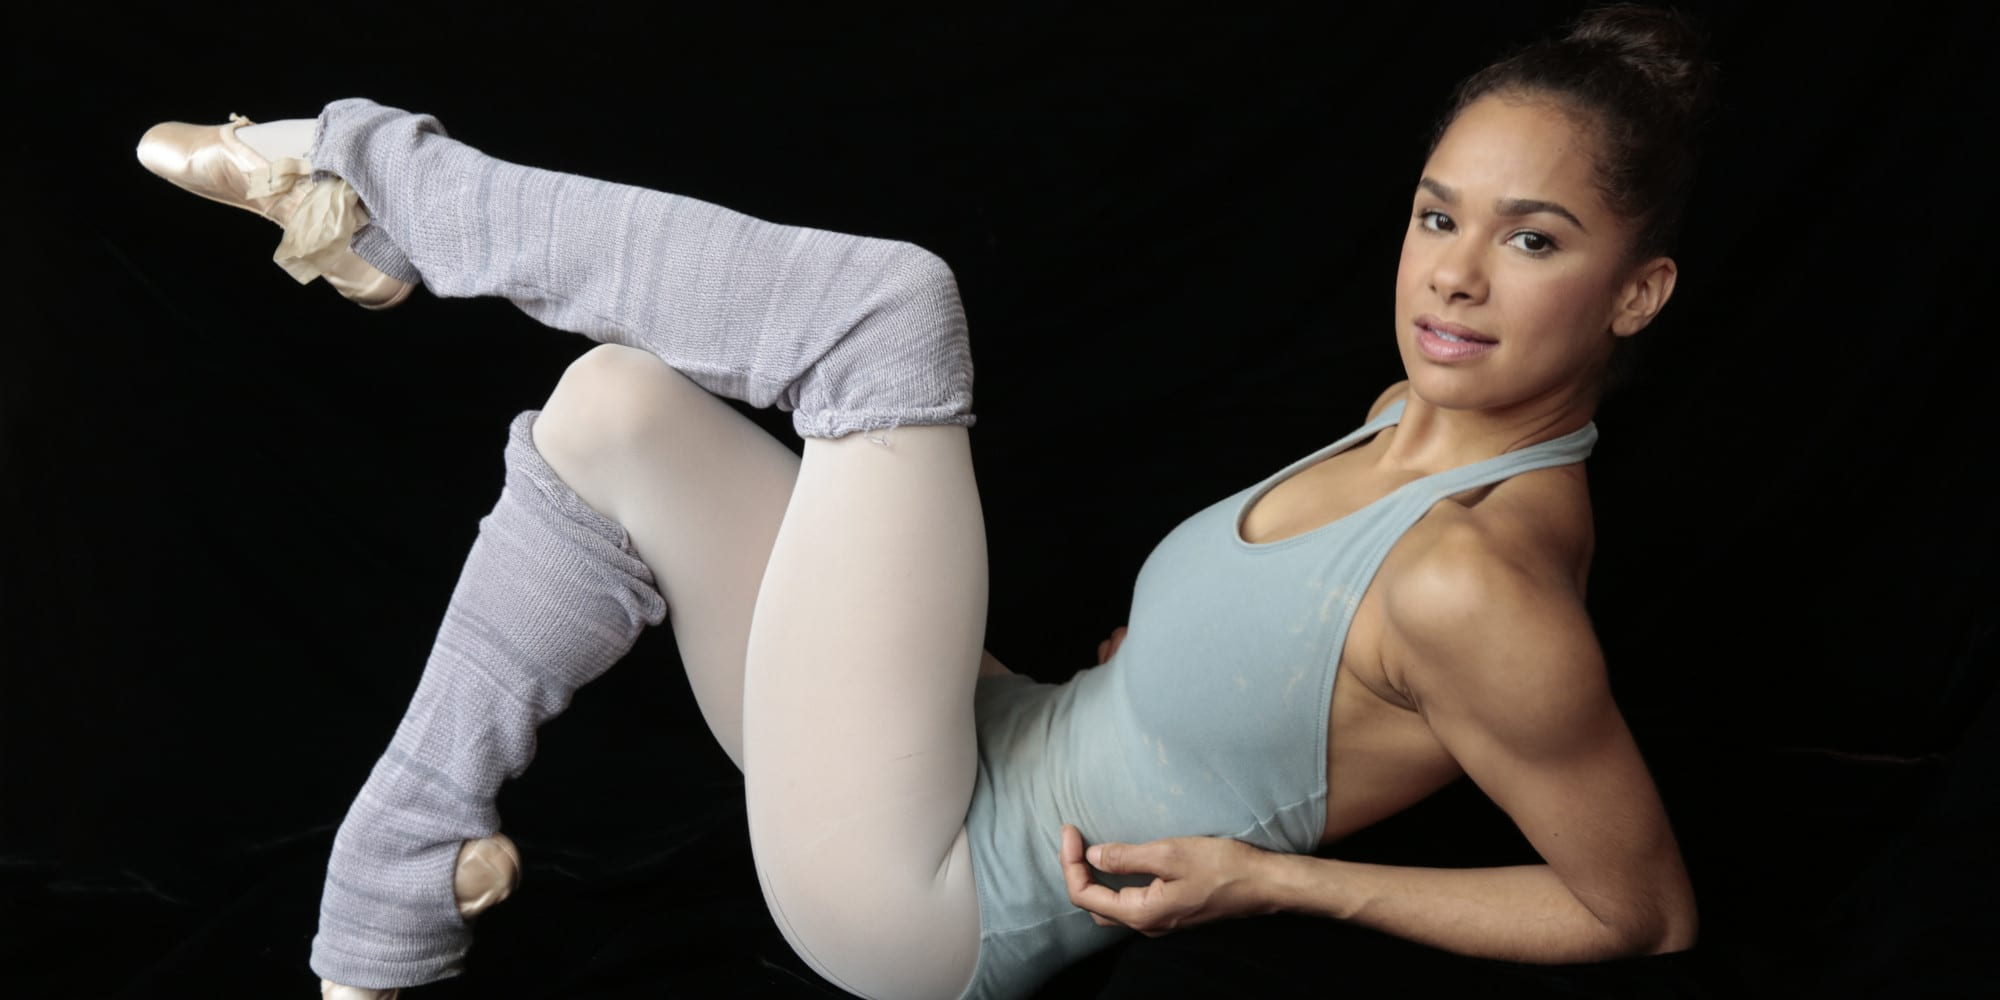 NEW YORK, NEW YORK--MAY 22, 2014--Prima ballerina Misty Copeland will be a make history as the 1st A